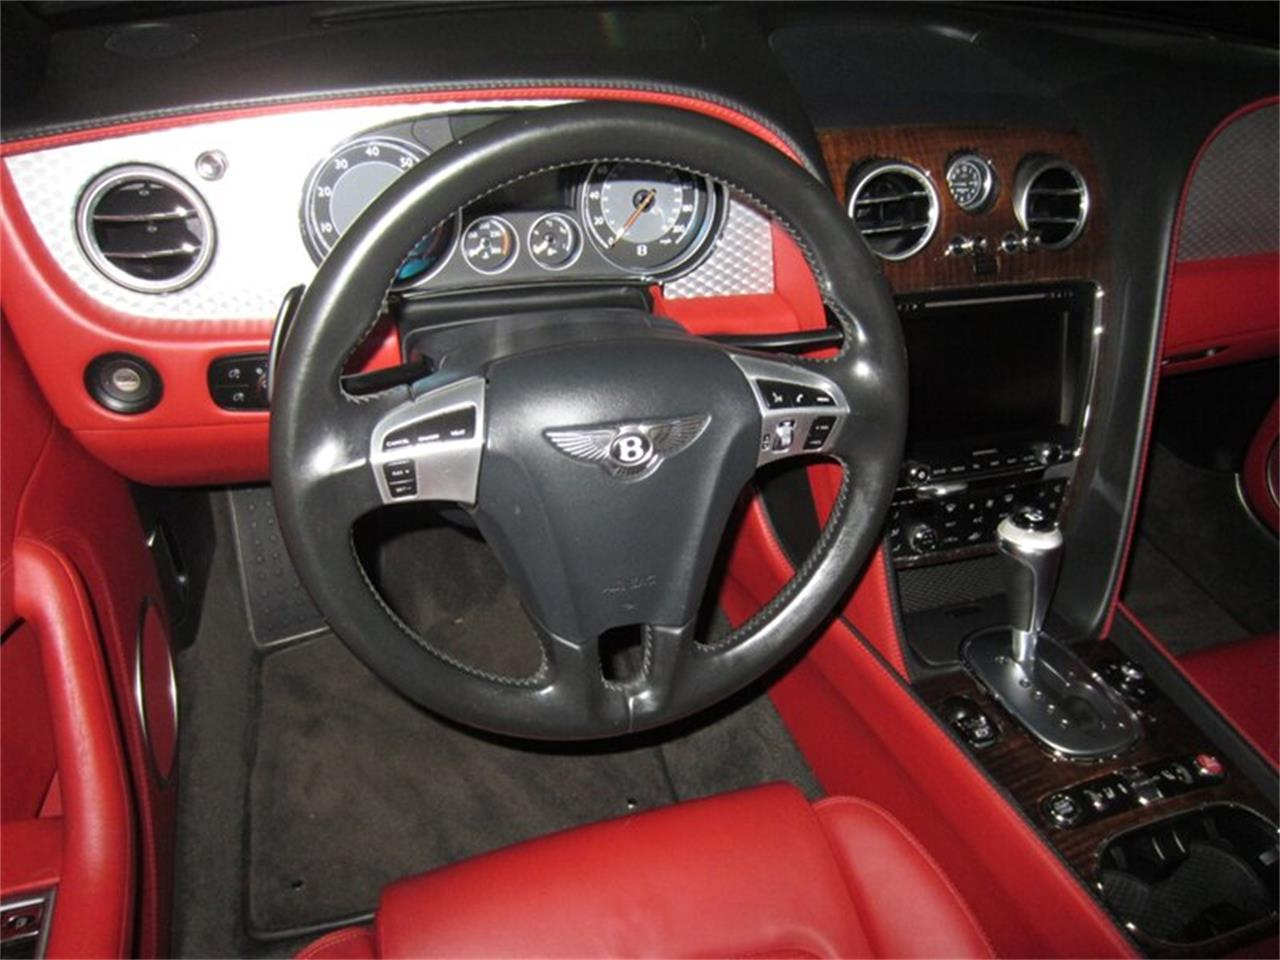 2013 Bentley Continental GTC V8 for sale in Delray Beach, FL – photo 10